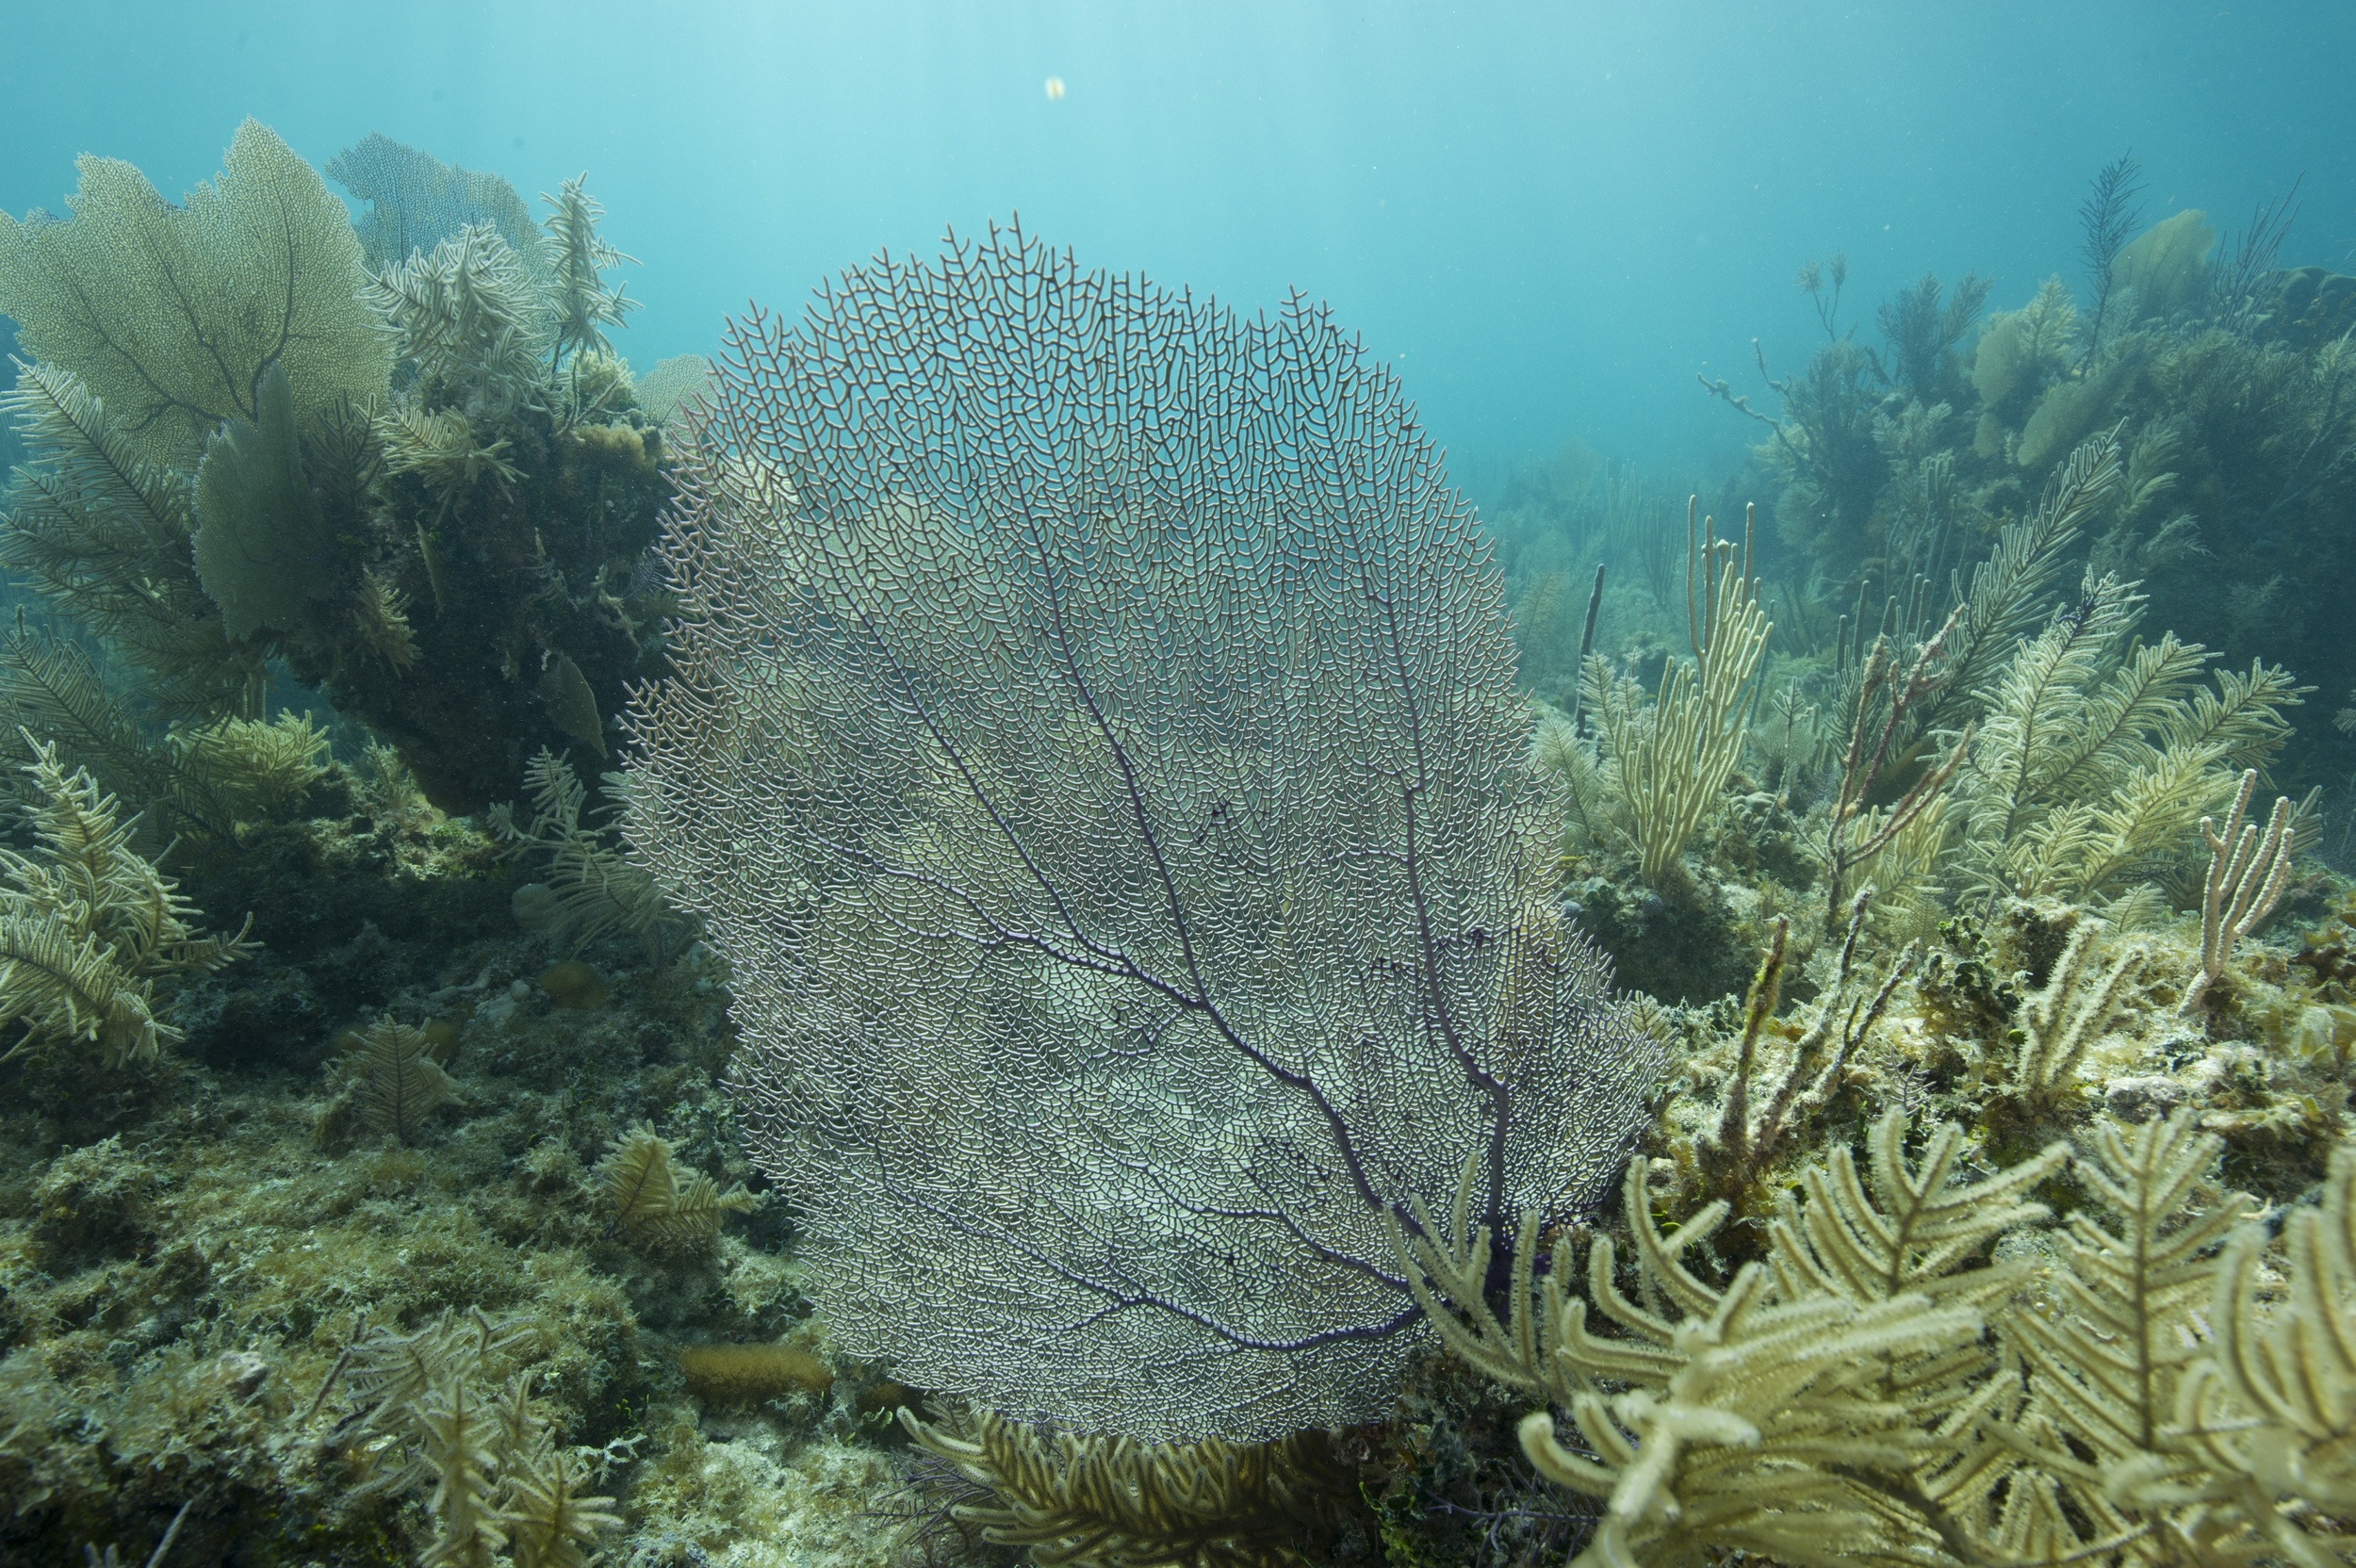 Original digital capture of a seafan, Florida Keys